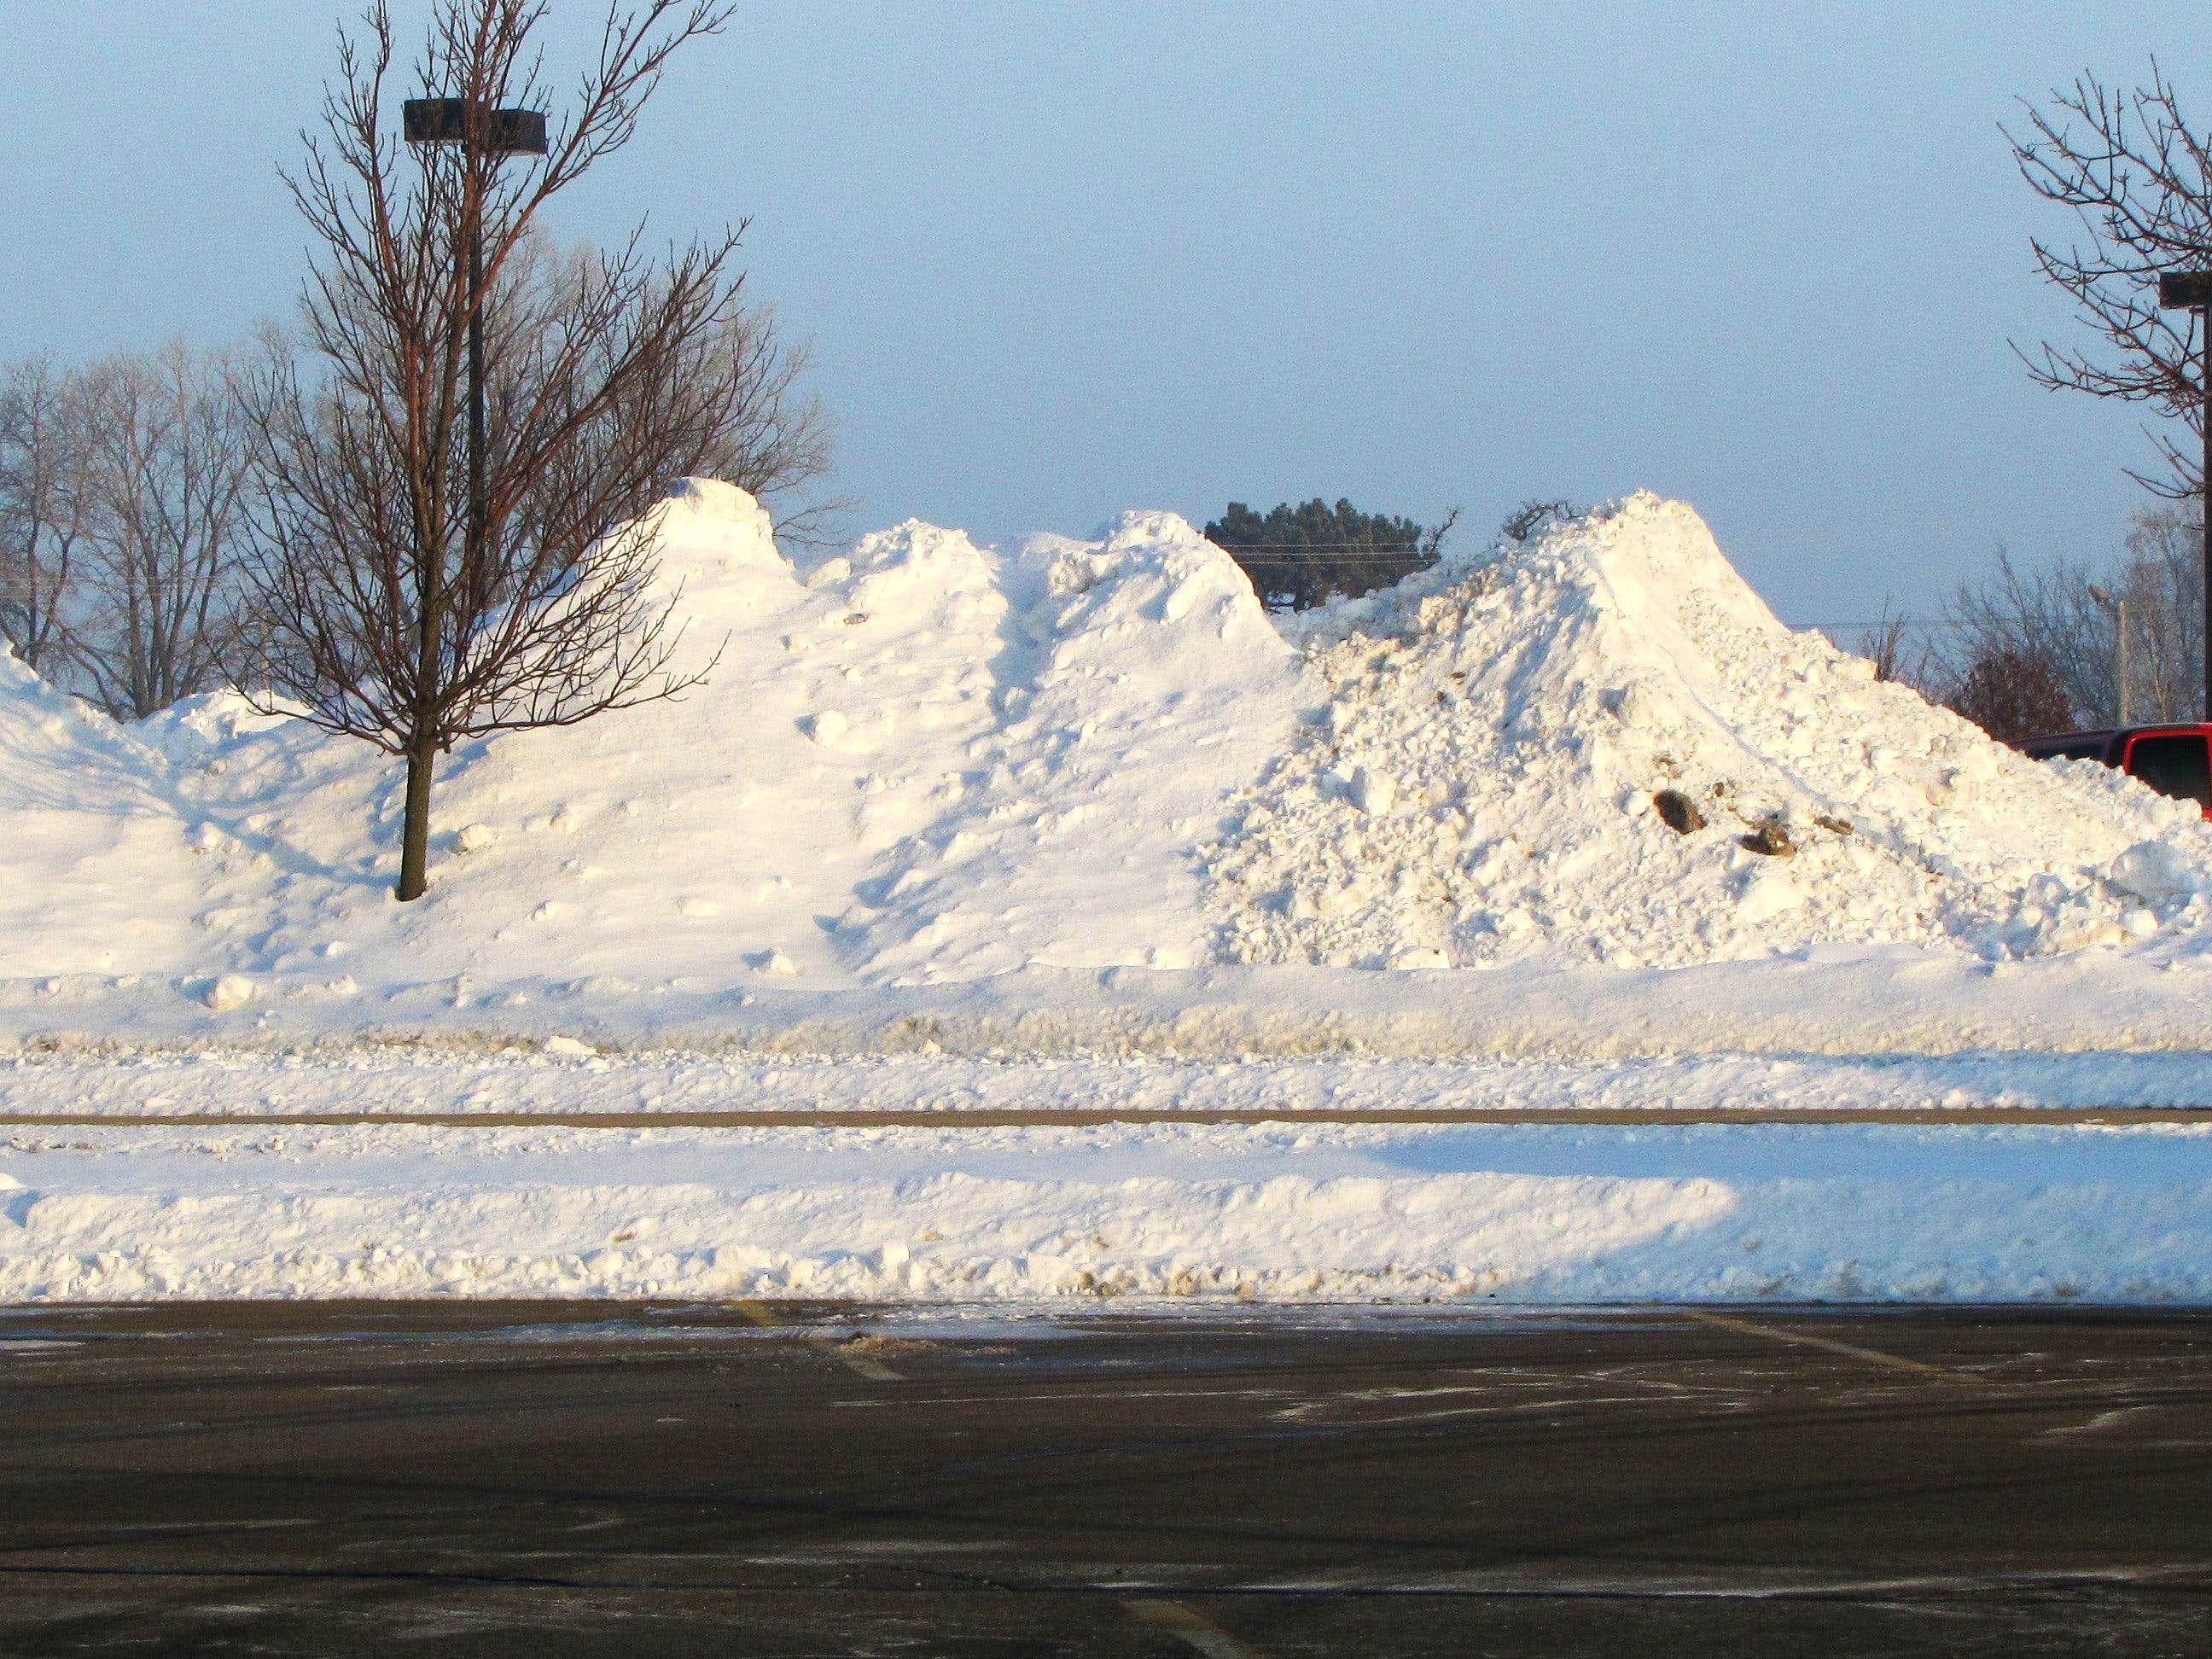 Parking Lot Mountains of Snow